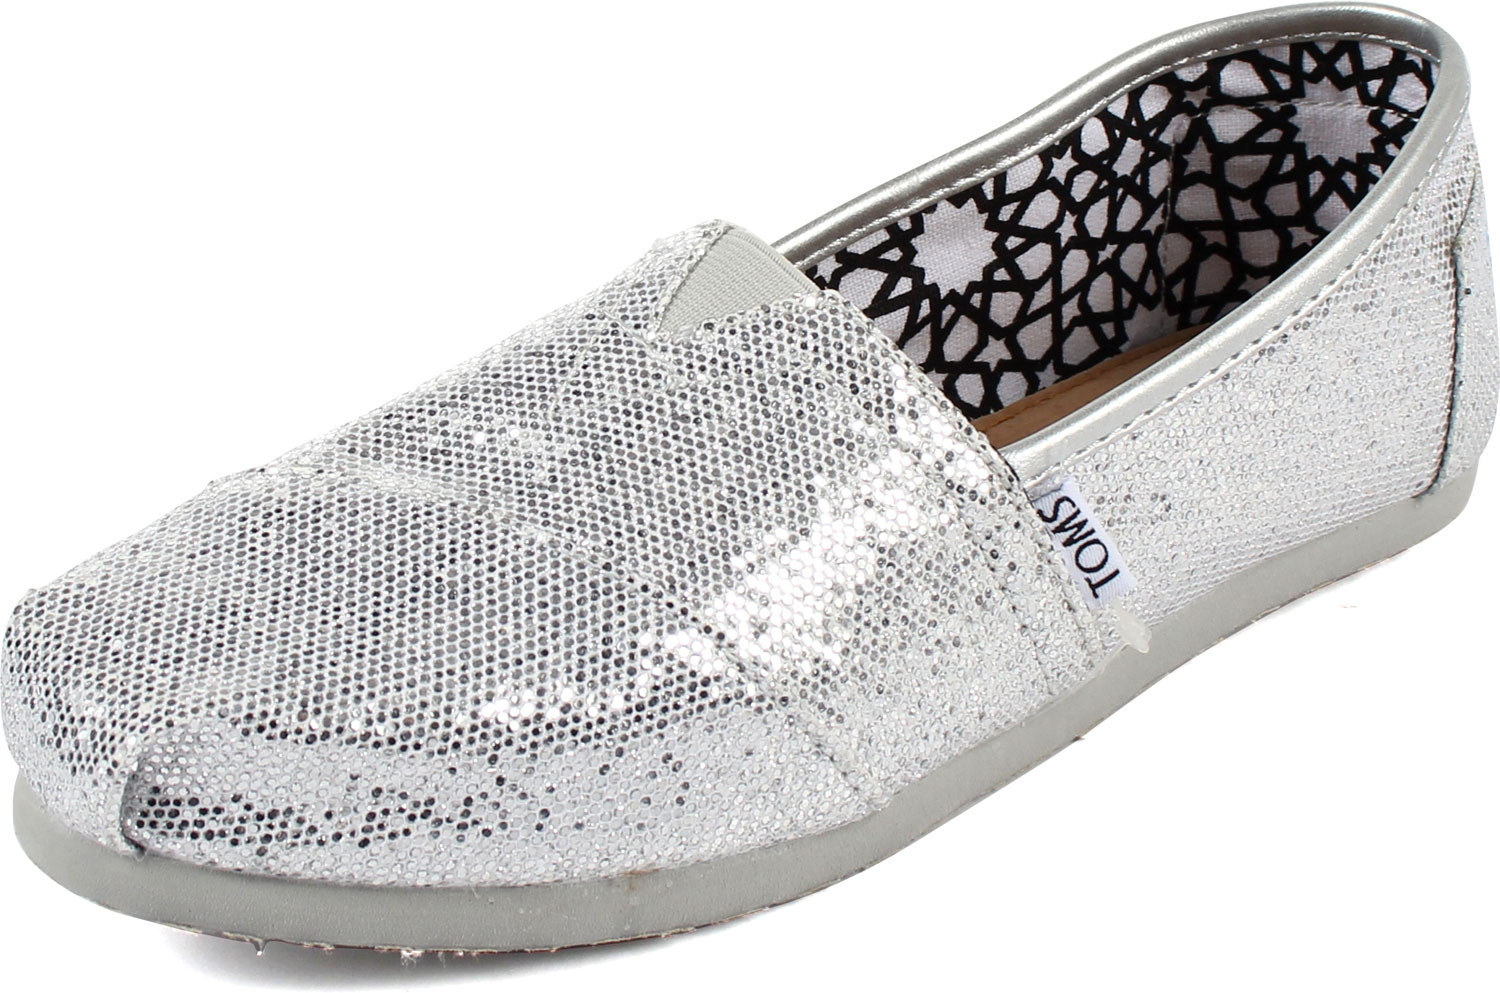 Toms Kids Shoes Clearance